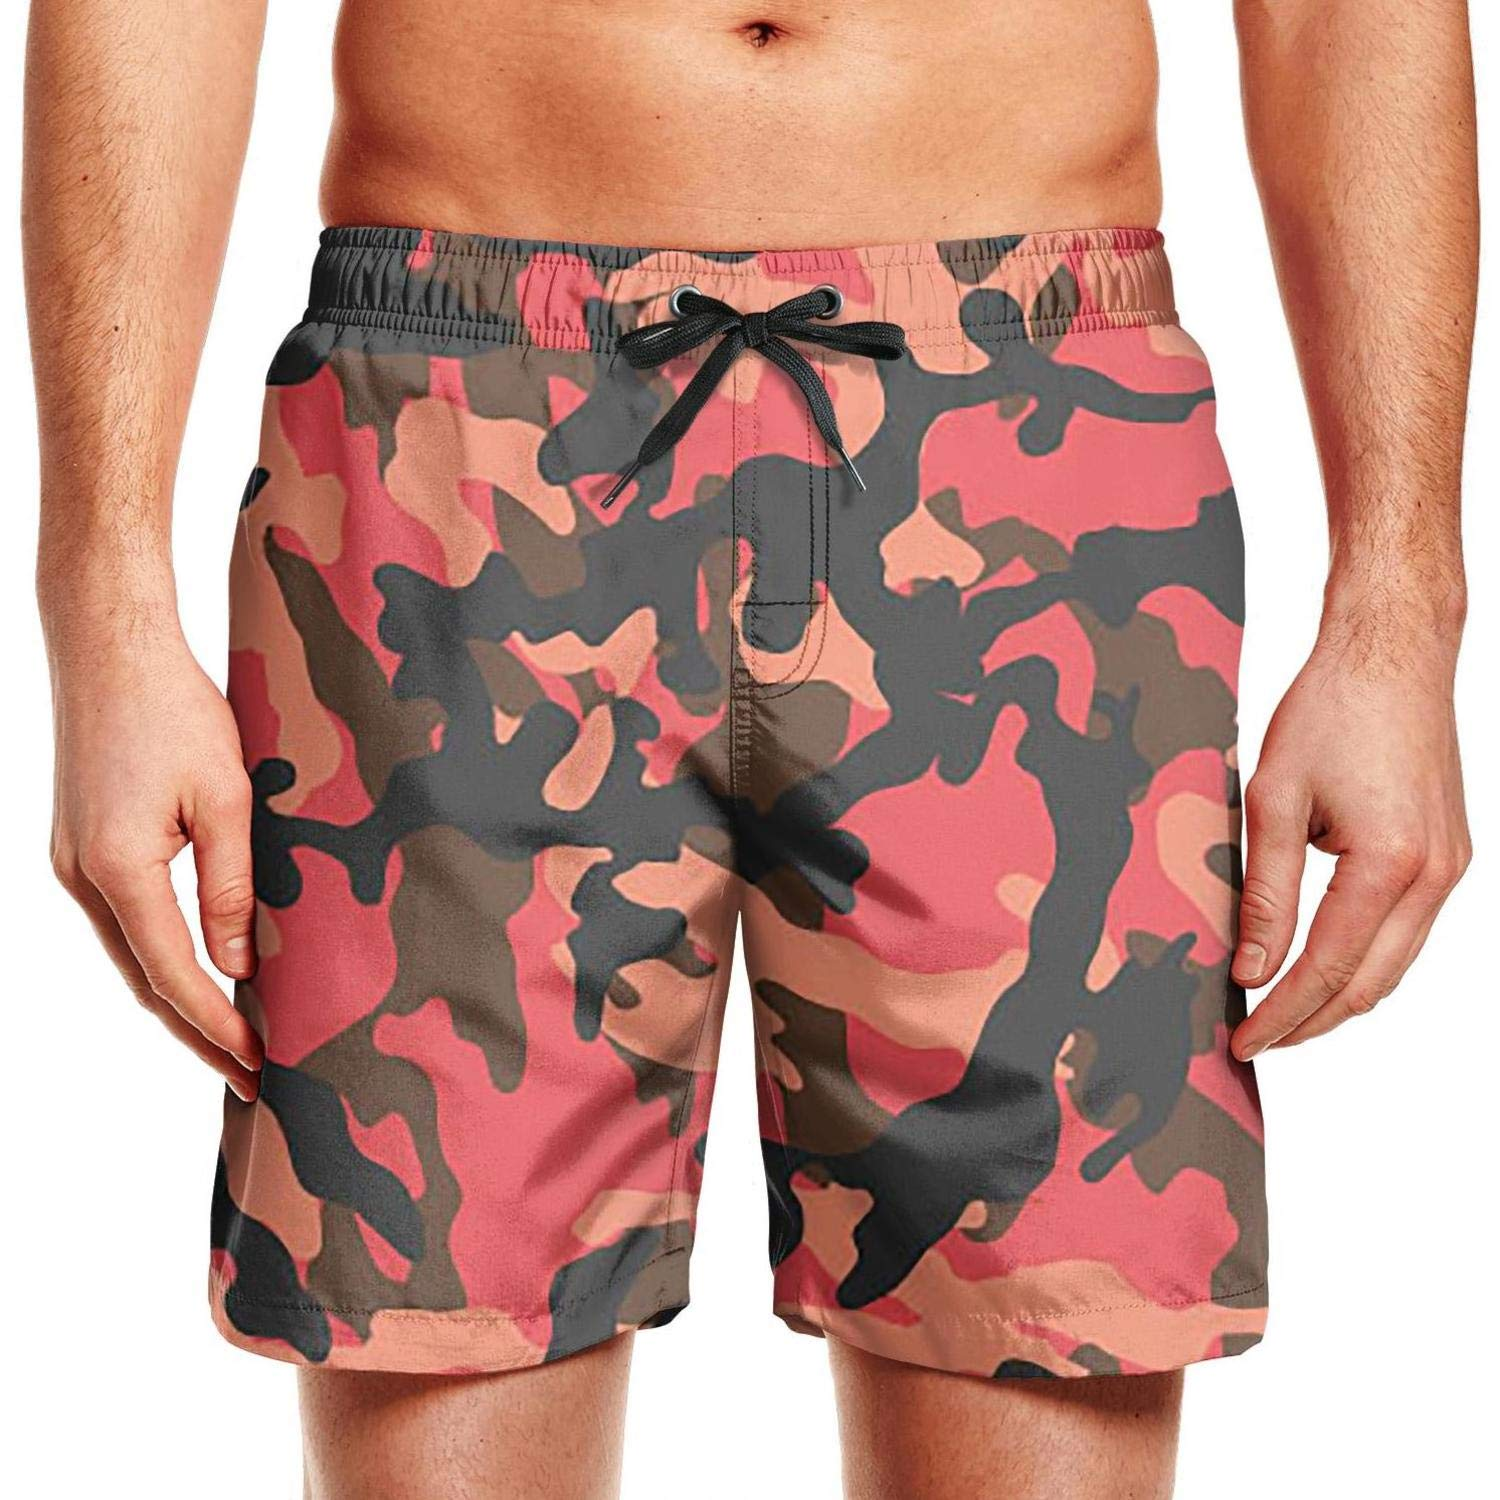 ZYLIN Mens Swim Trunks Printed Camouflage Camo Army Boardshorts Slim Fit with Mesh Lining